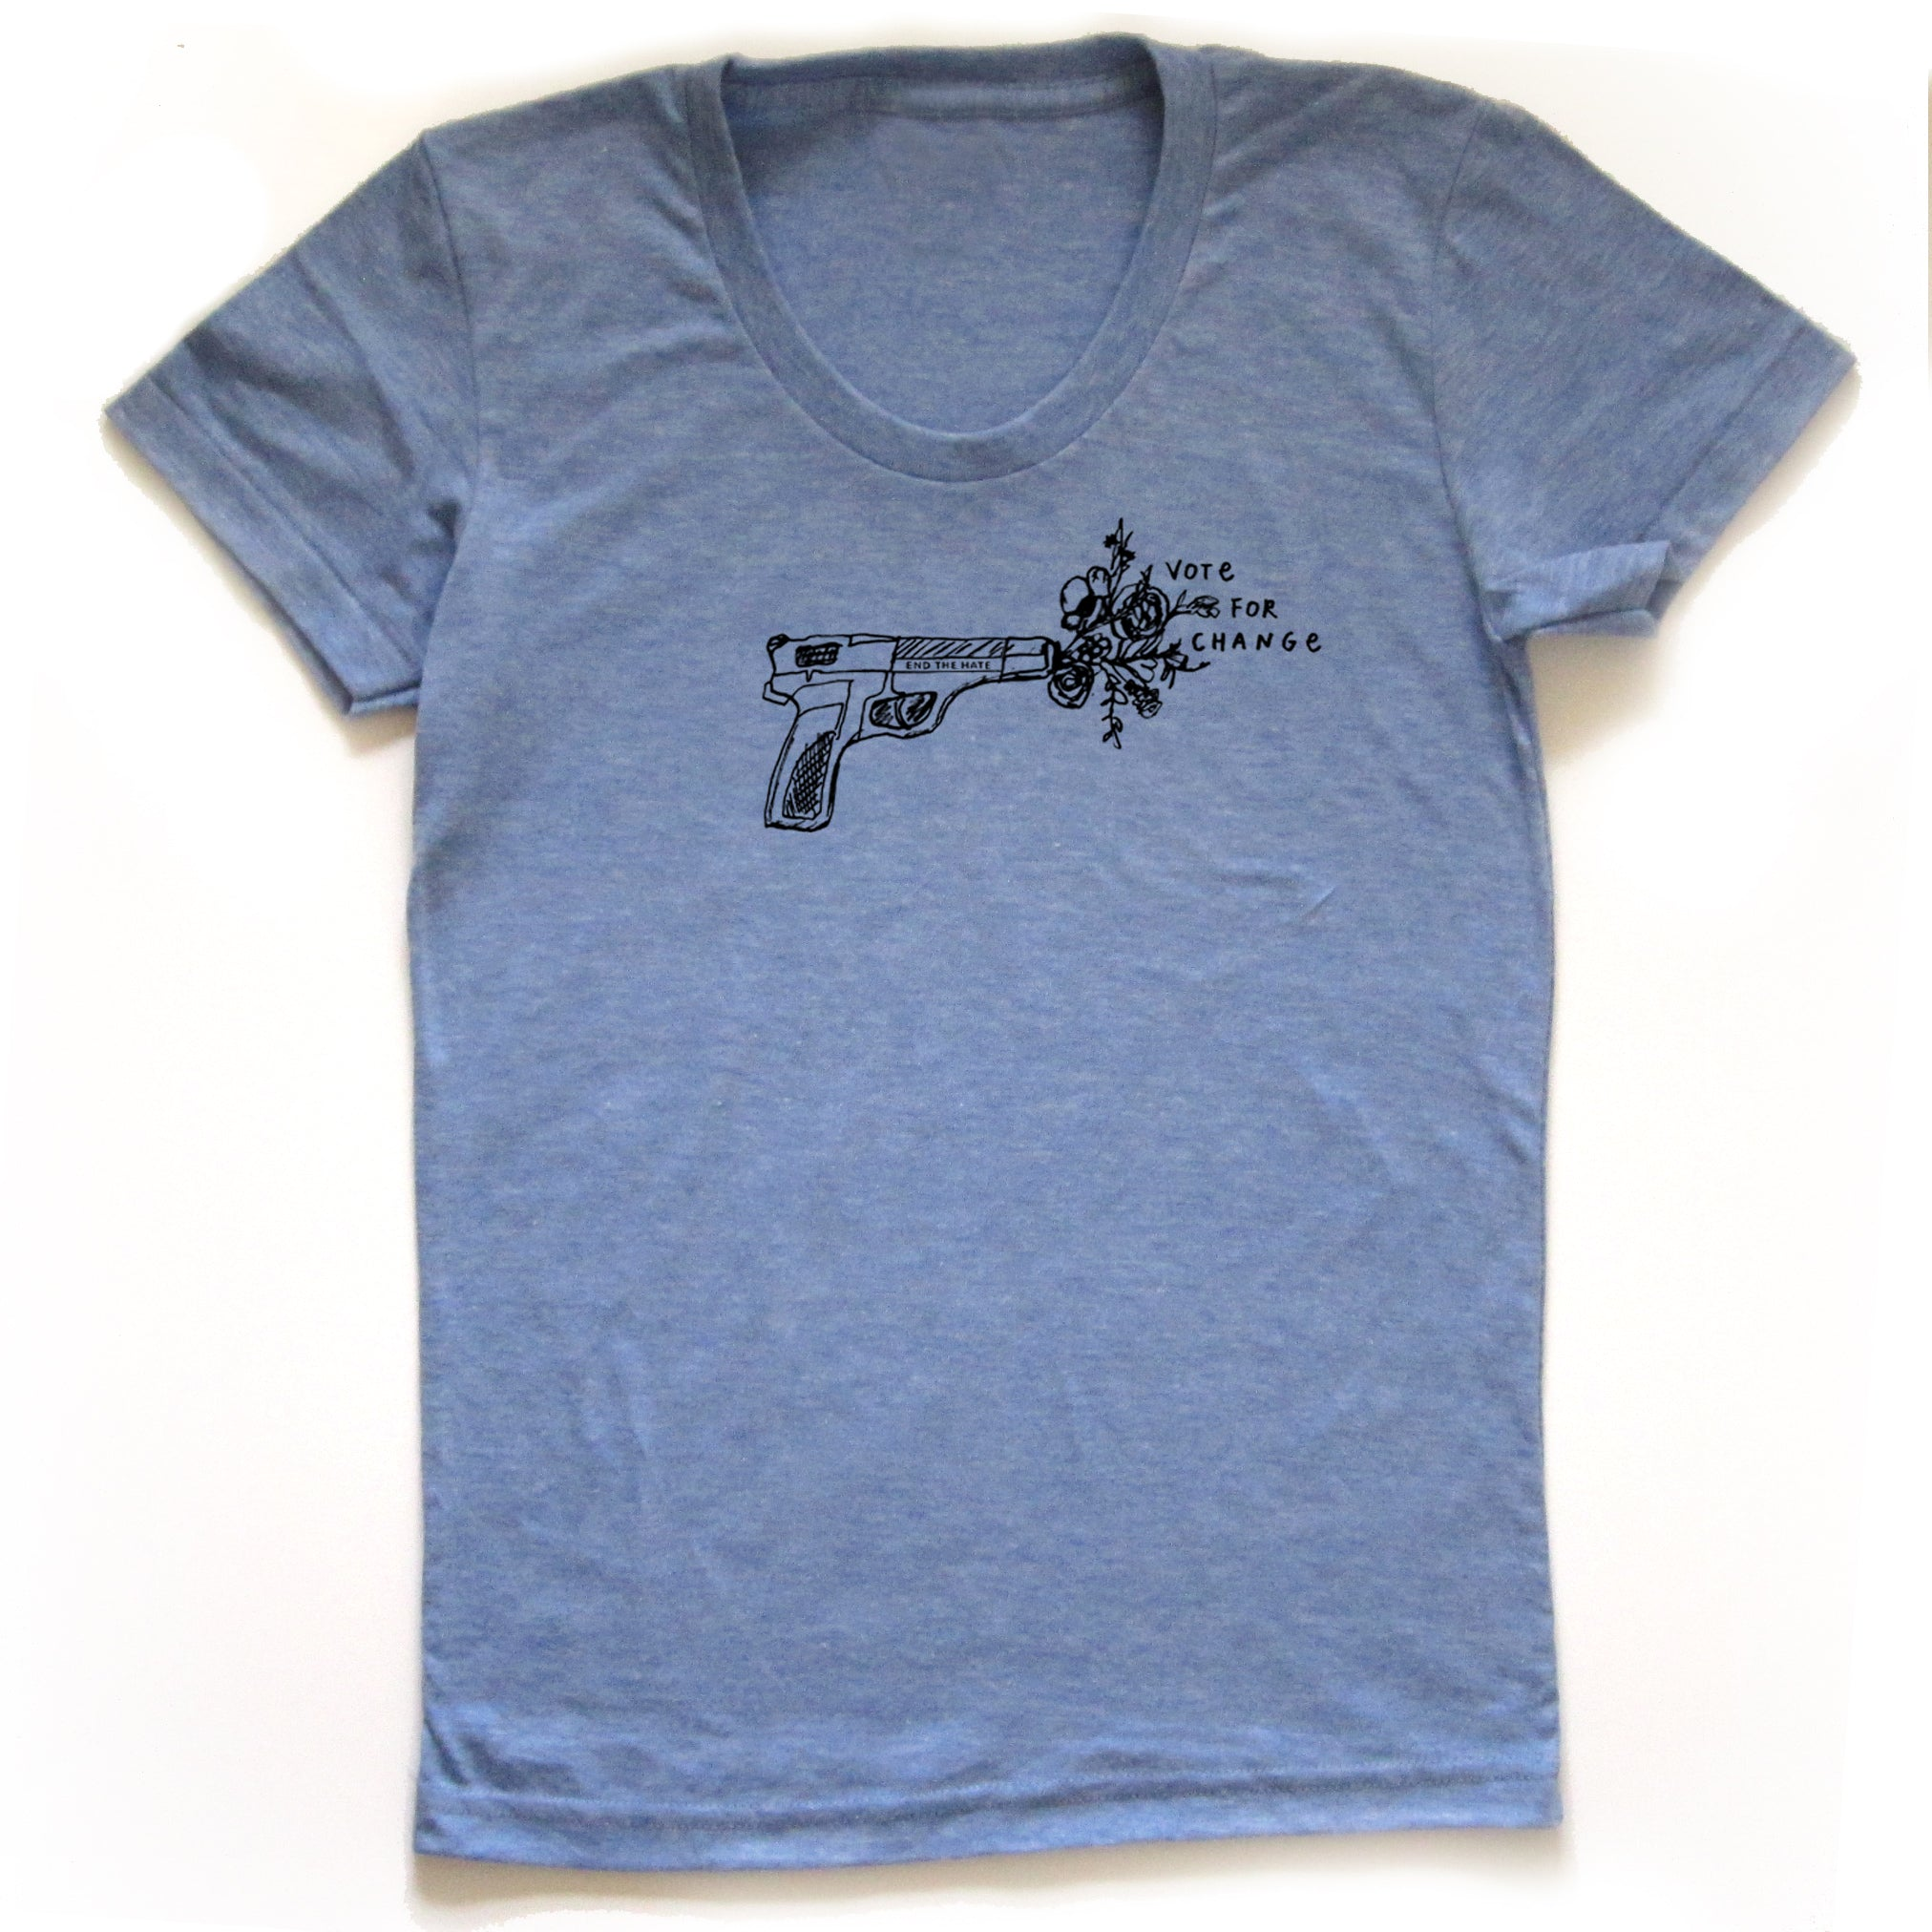 Vote for change : Women's Tee